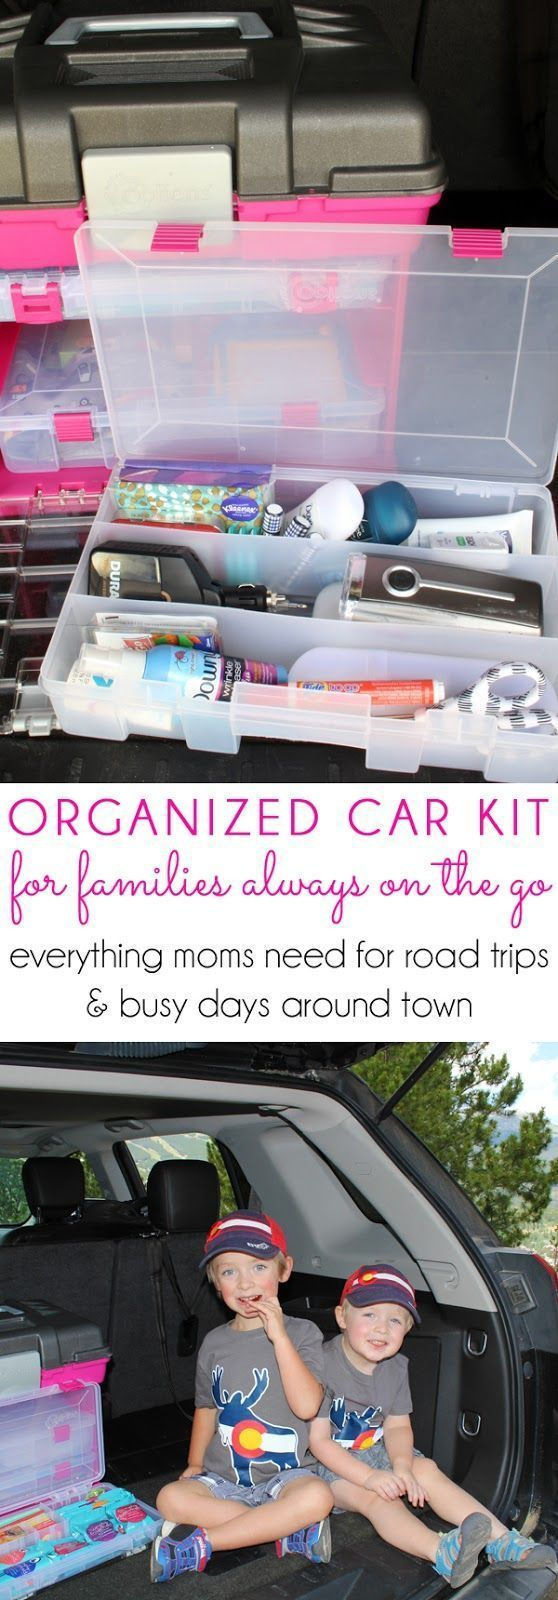 108 Best Images About Organized Travel On Pinterest